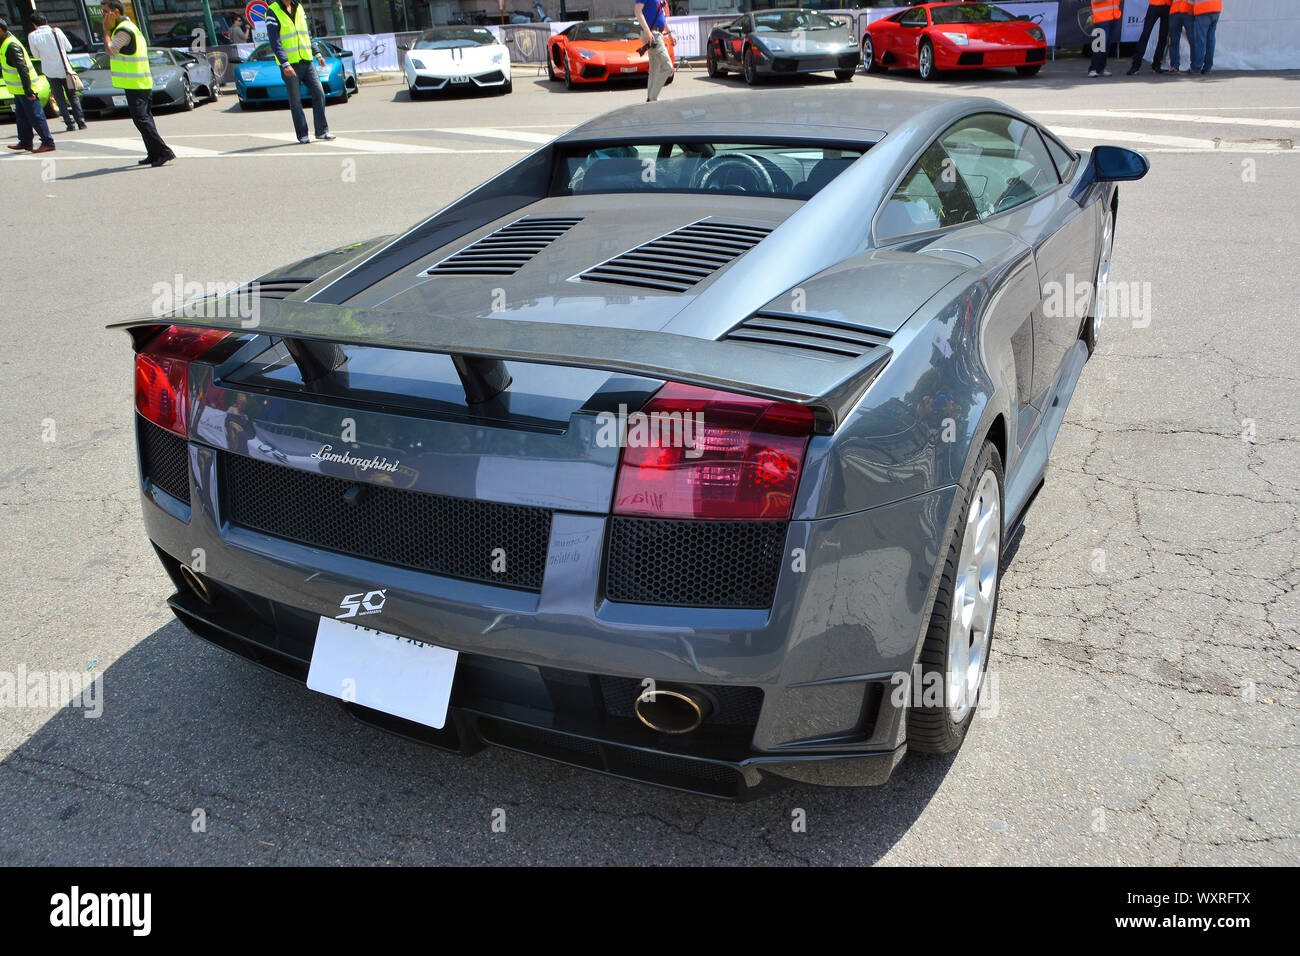 Luxury Car Outside House High Resolution Stock Photography And Images Alamy